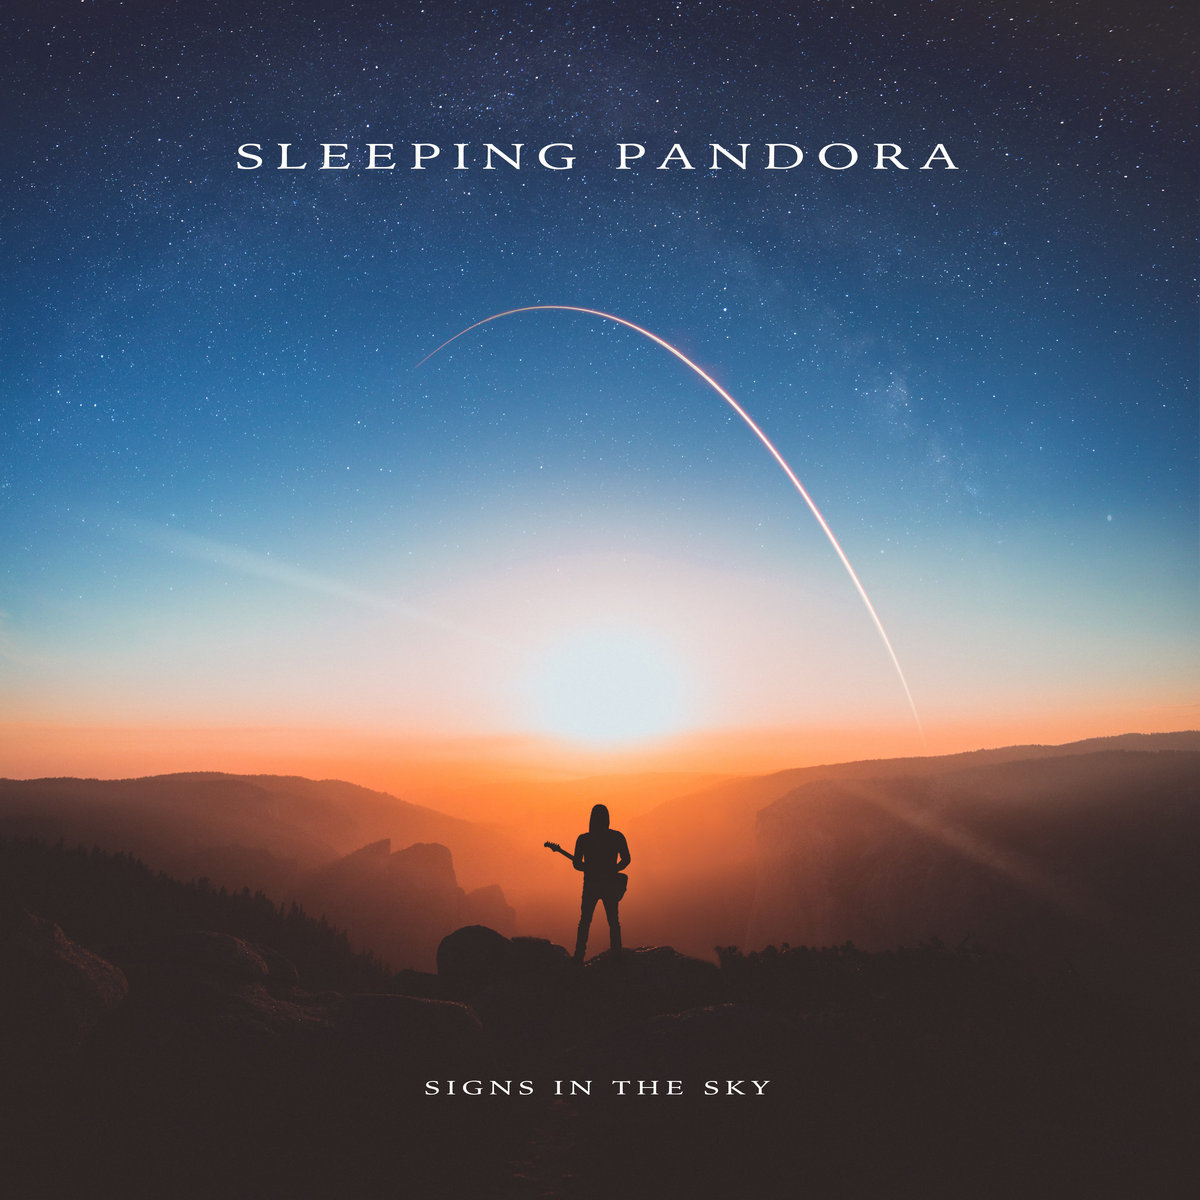 Sleeping Pandora - Signs In The Sky